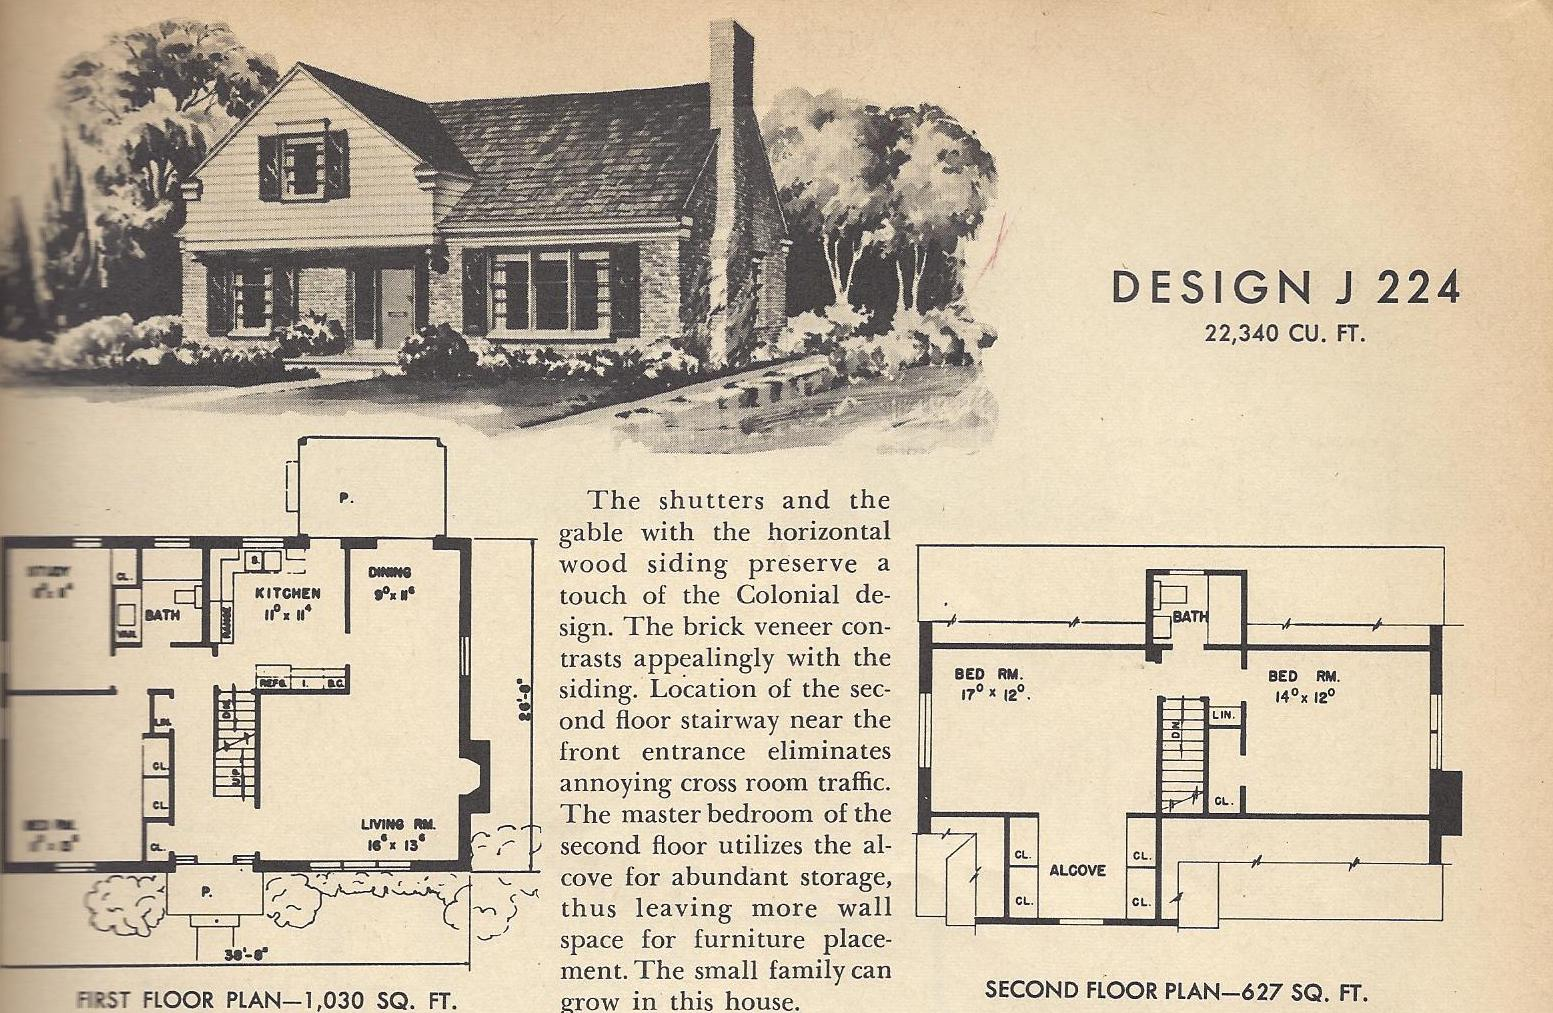 Vintage house plans j224 antique alter ego for Home house plans